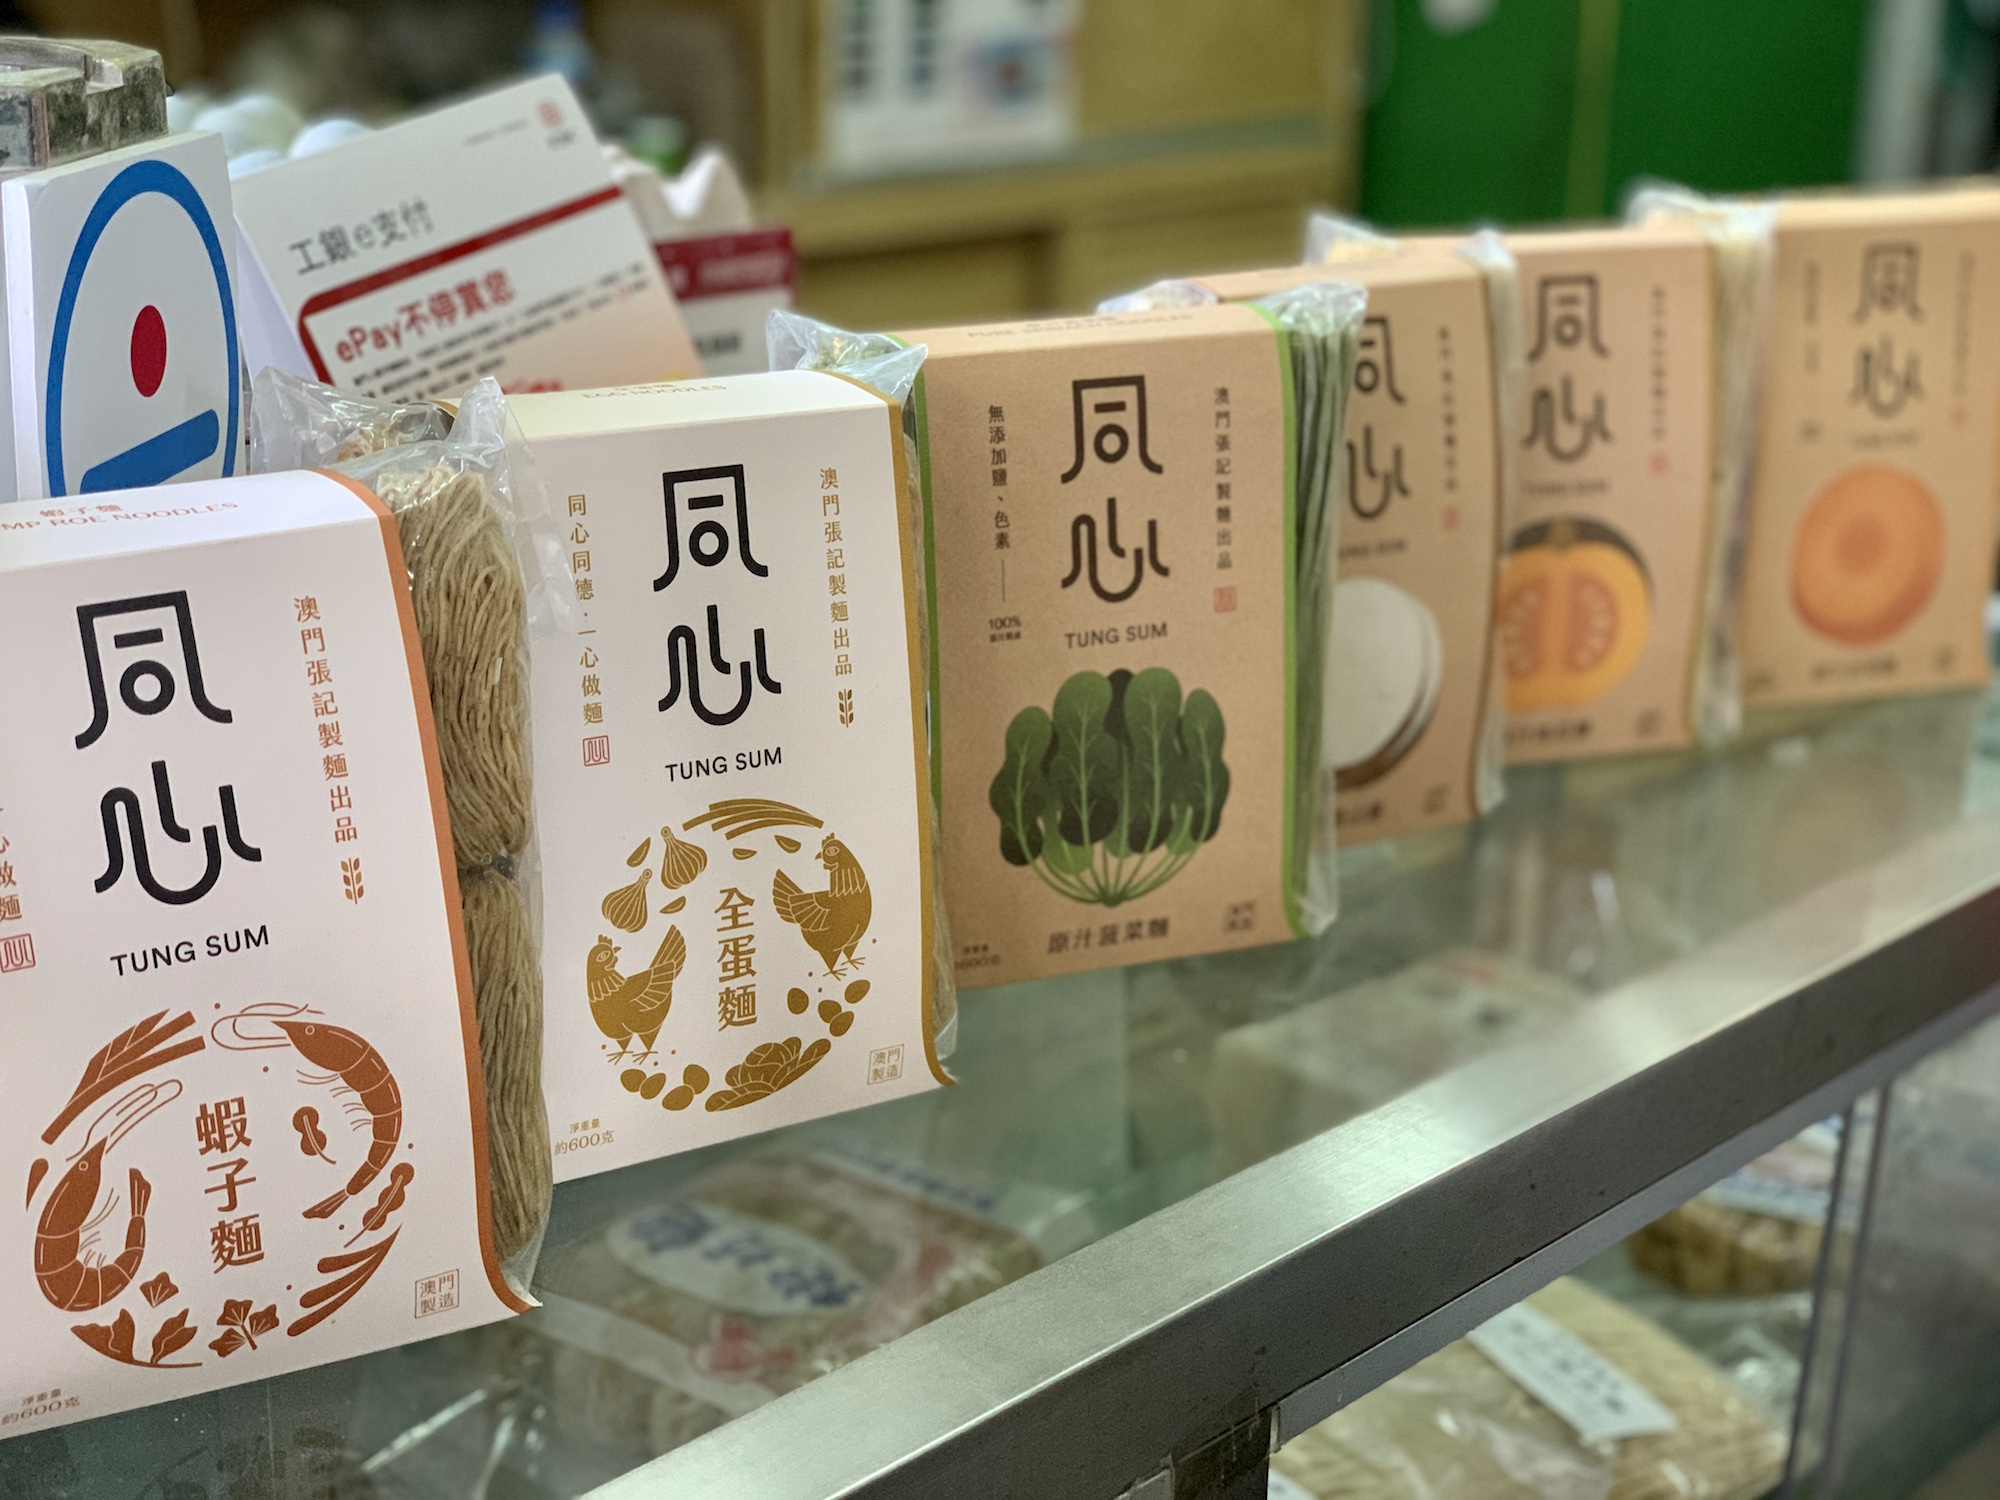 Cheong Kei Noodles New Packaging Displayed on the Counter Macau Lifestyle